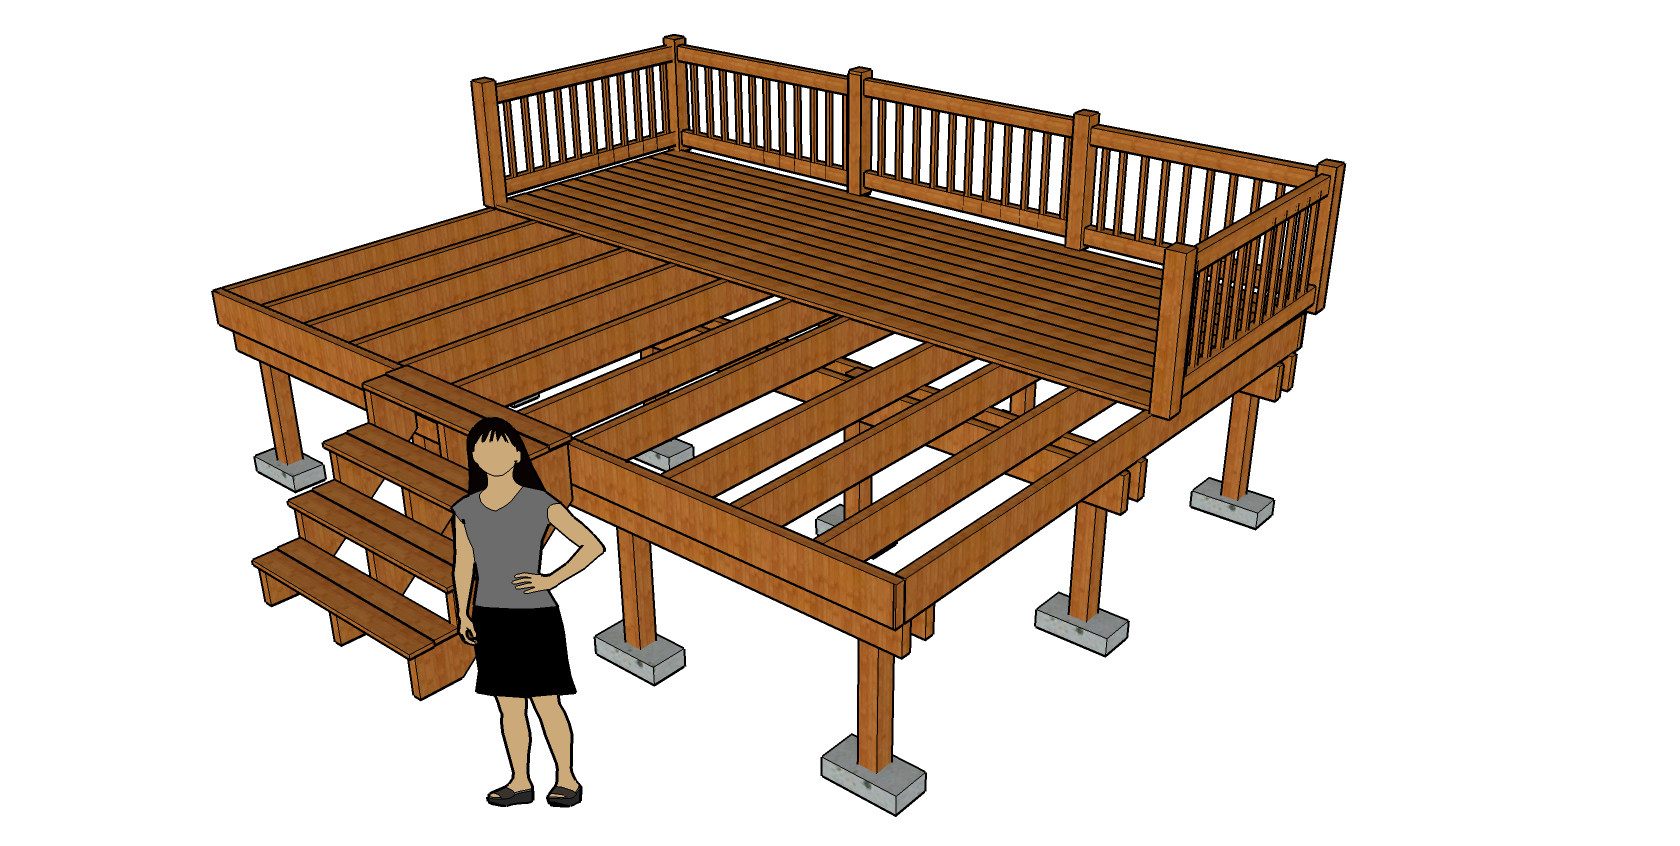 File Deck Diagram Showing Footers Posts And Joists Png